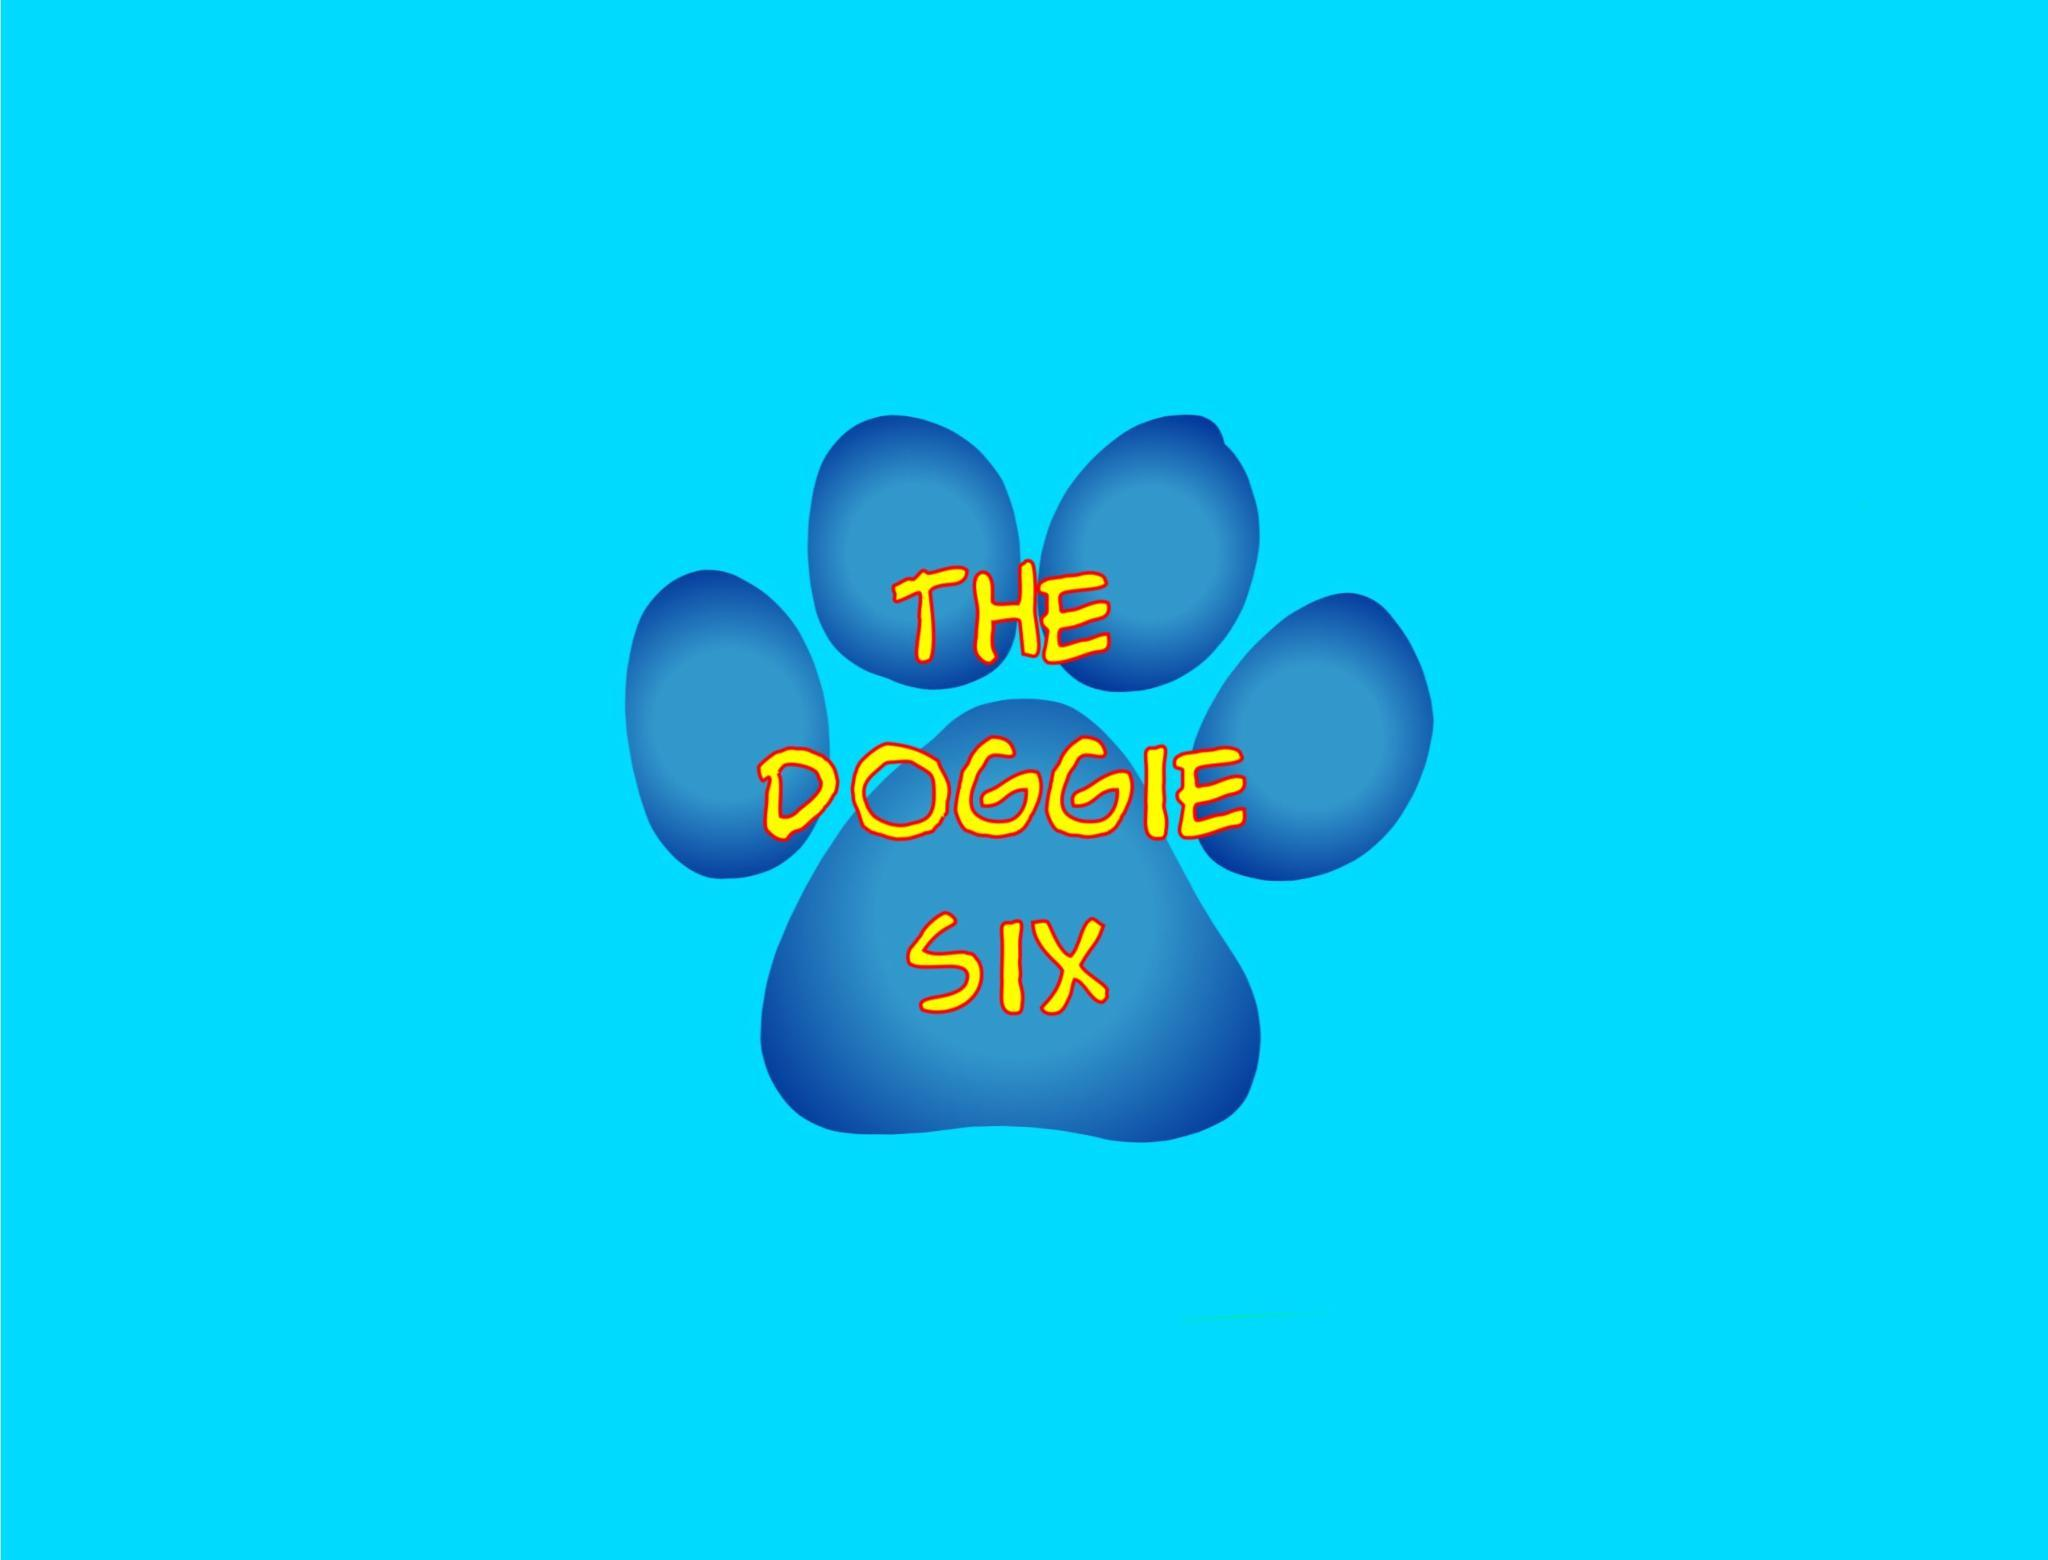 Who is your favourite Doggie from The Doggie Six?